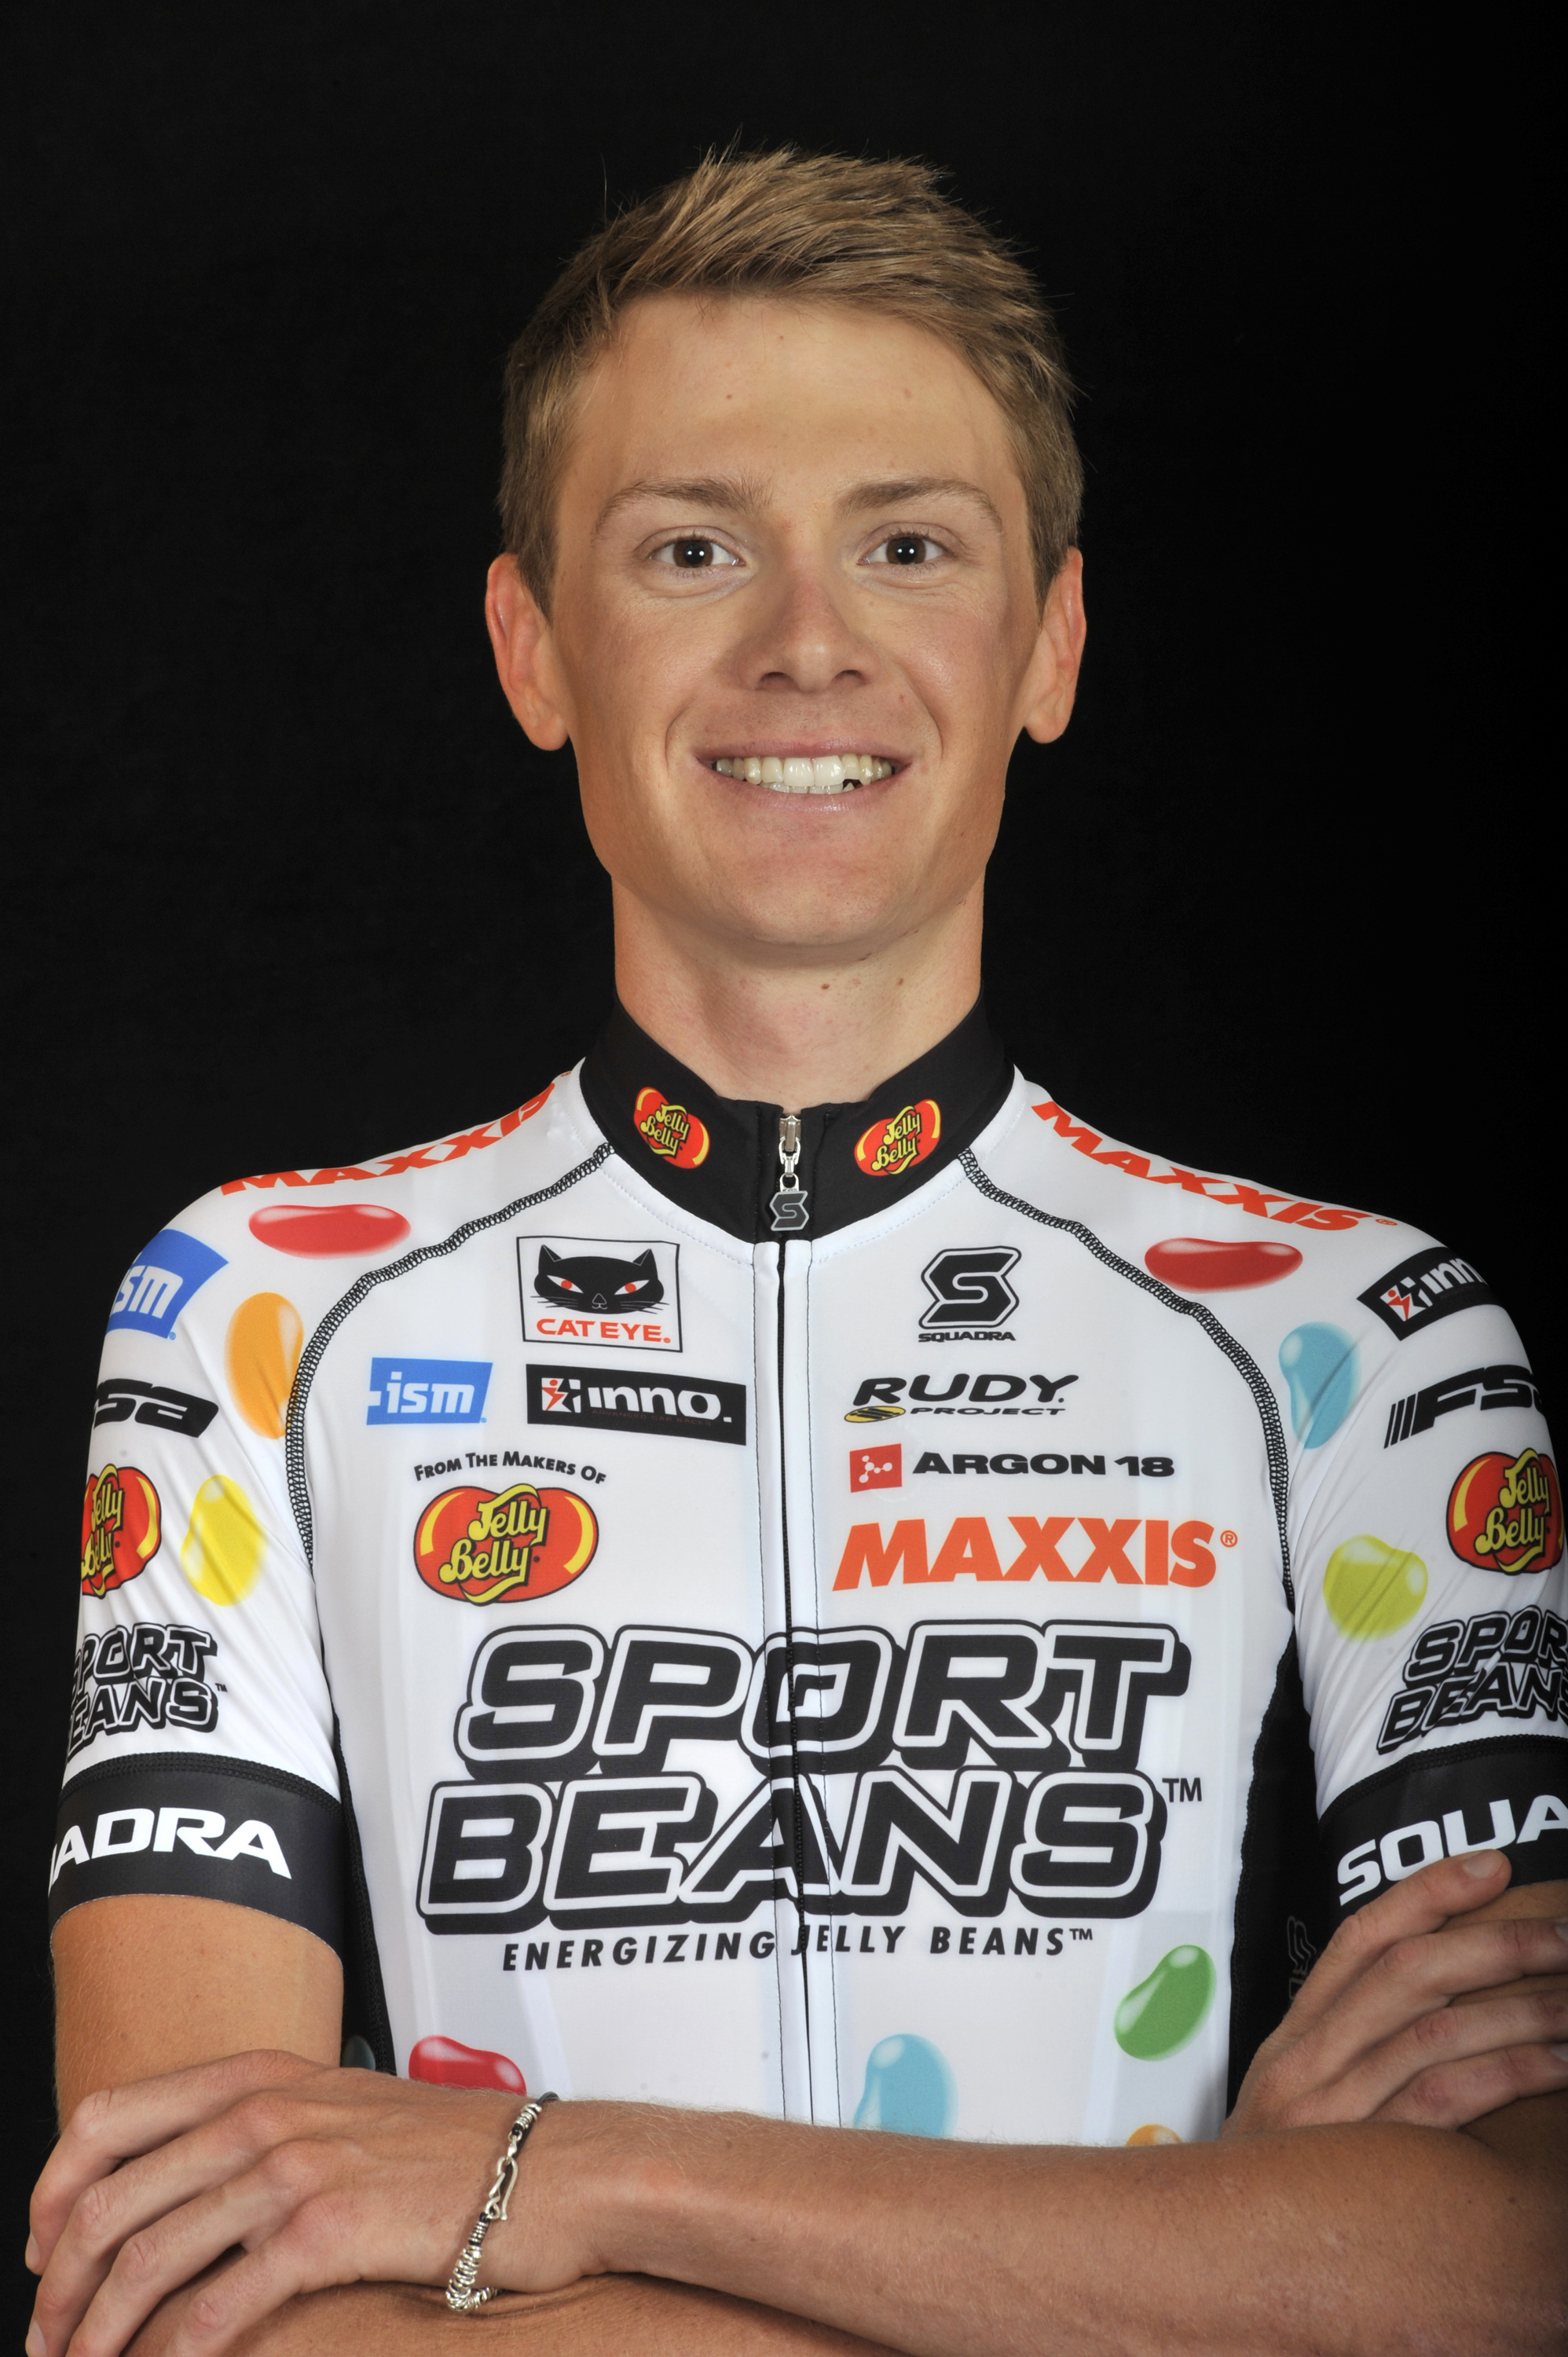 4a35f2d85 Joshua Berry - Jelly Belly Professional Cycling Team P B Maxxis